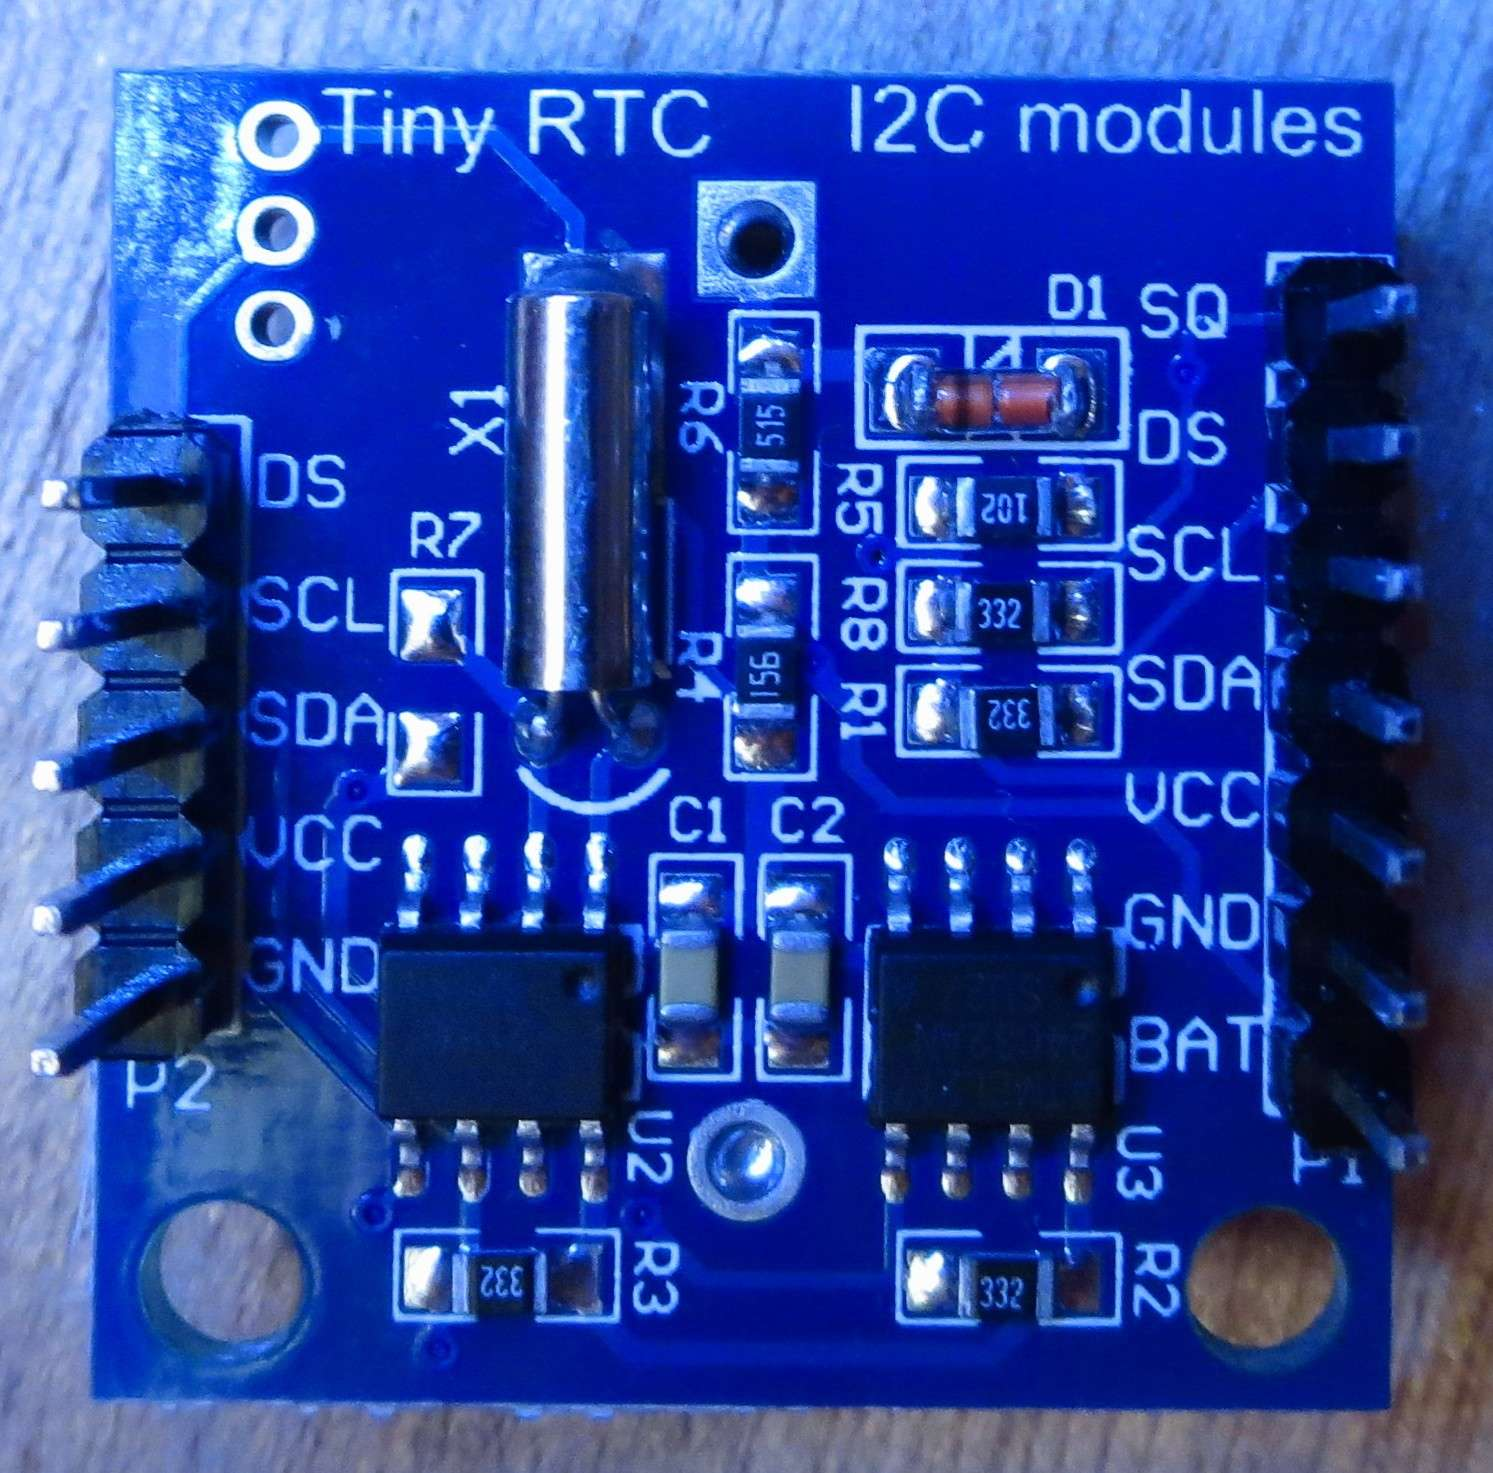 I2c Ds1307 Rtc Clock Weird Problem Aka 2165 165 Output Digital Using 8051 Microcontroller With Here Is A Pic Of The If It Can Help